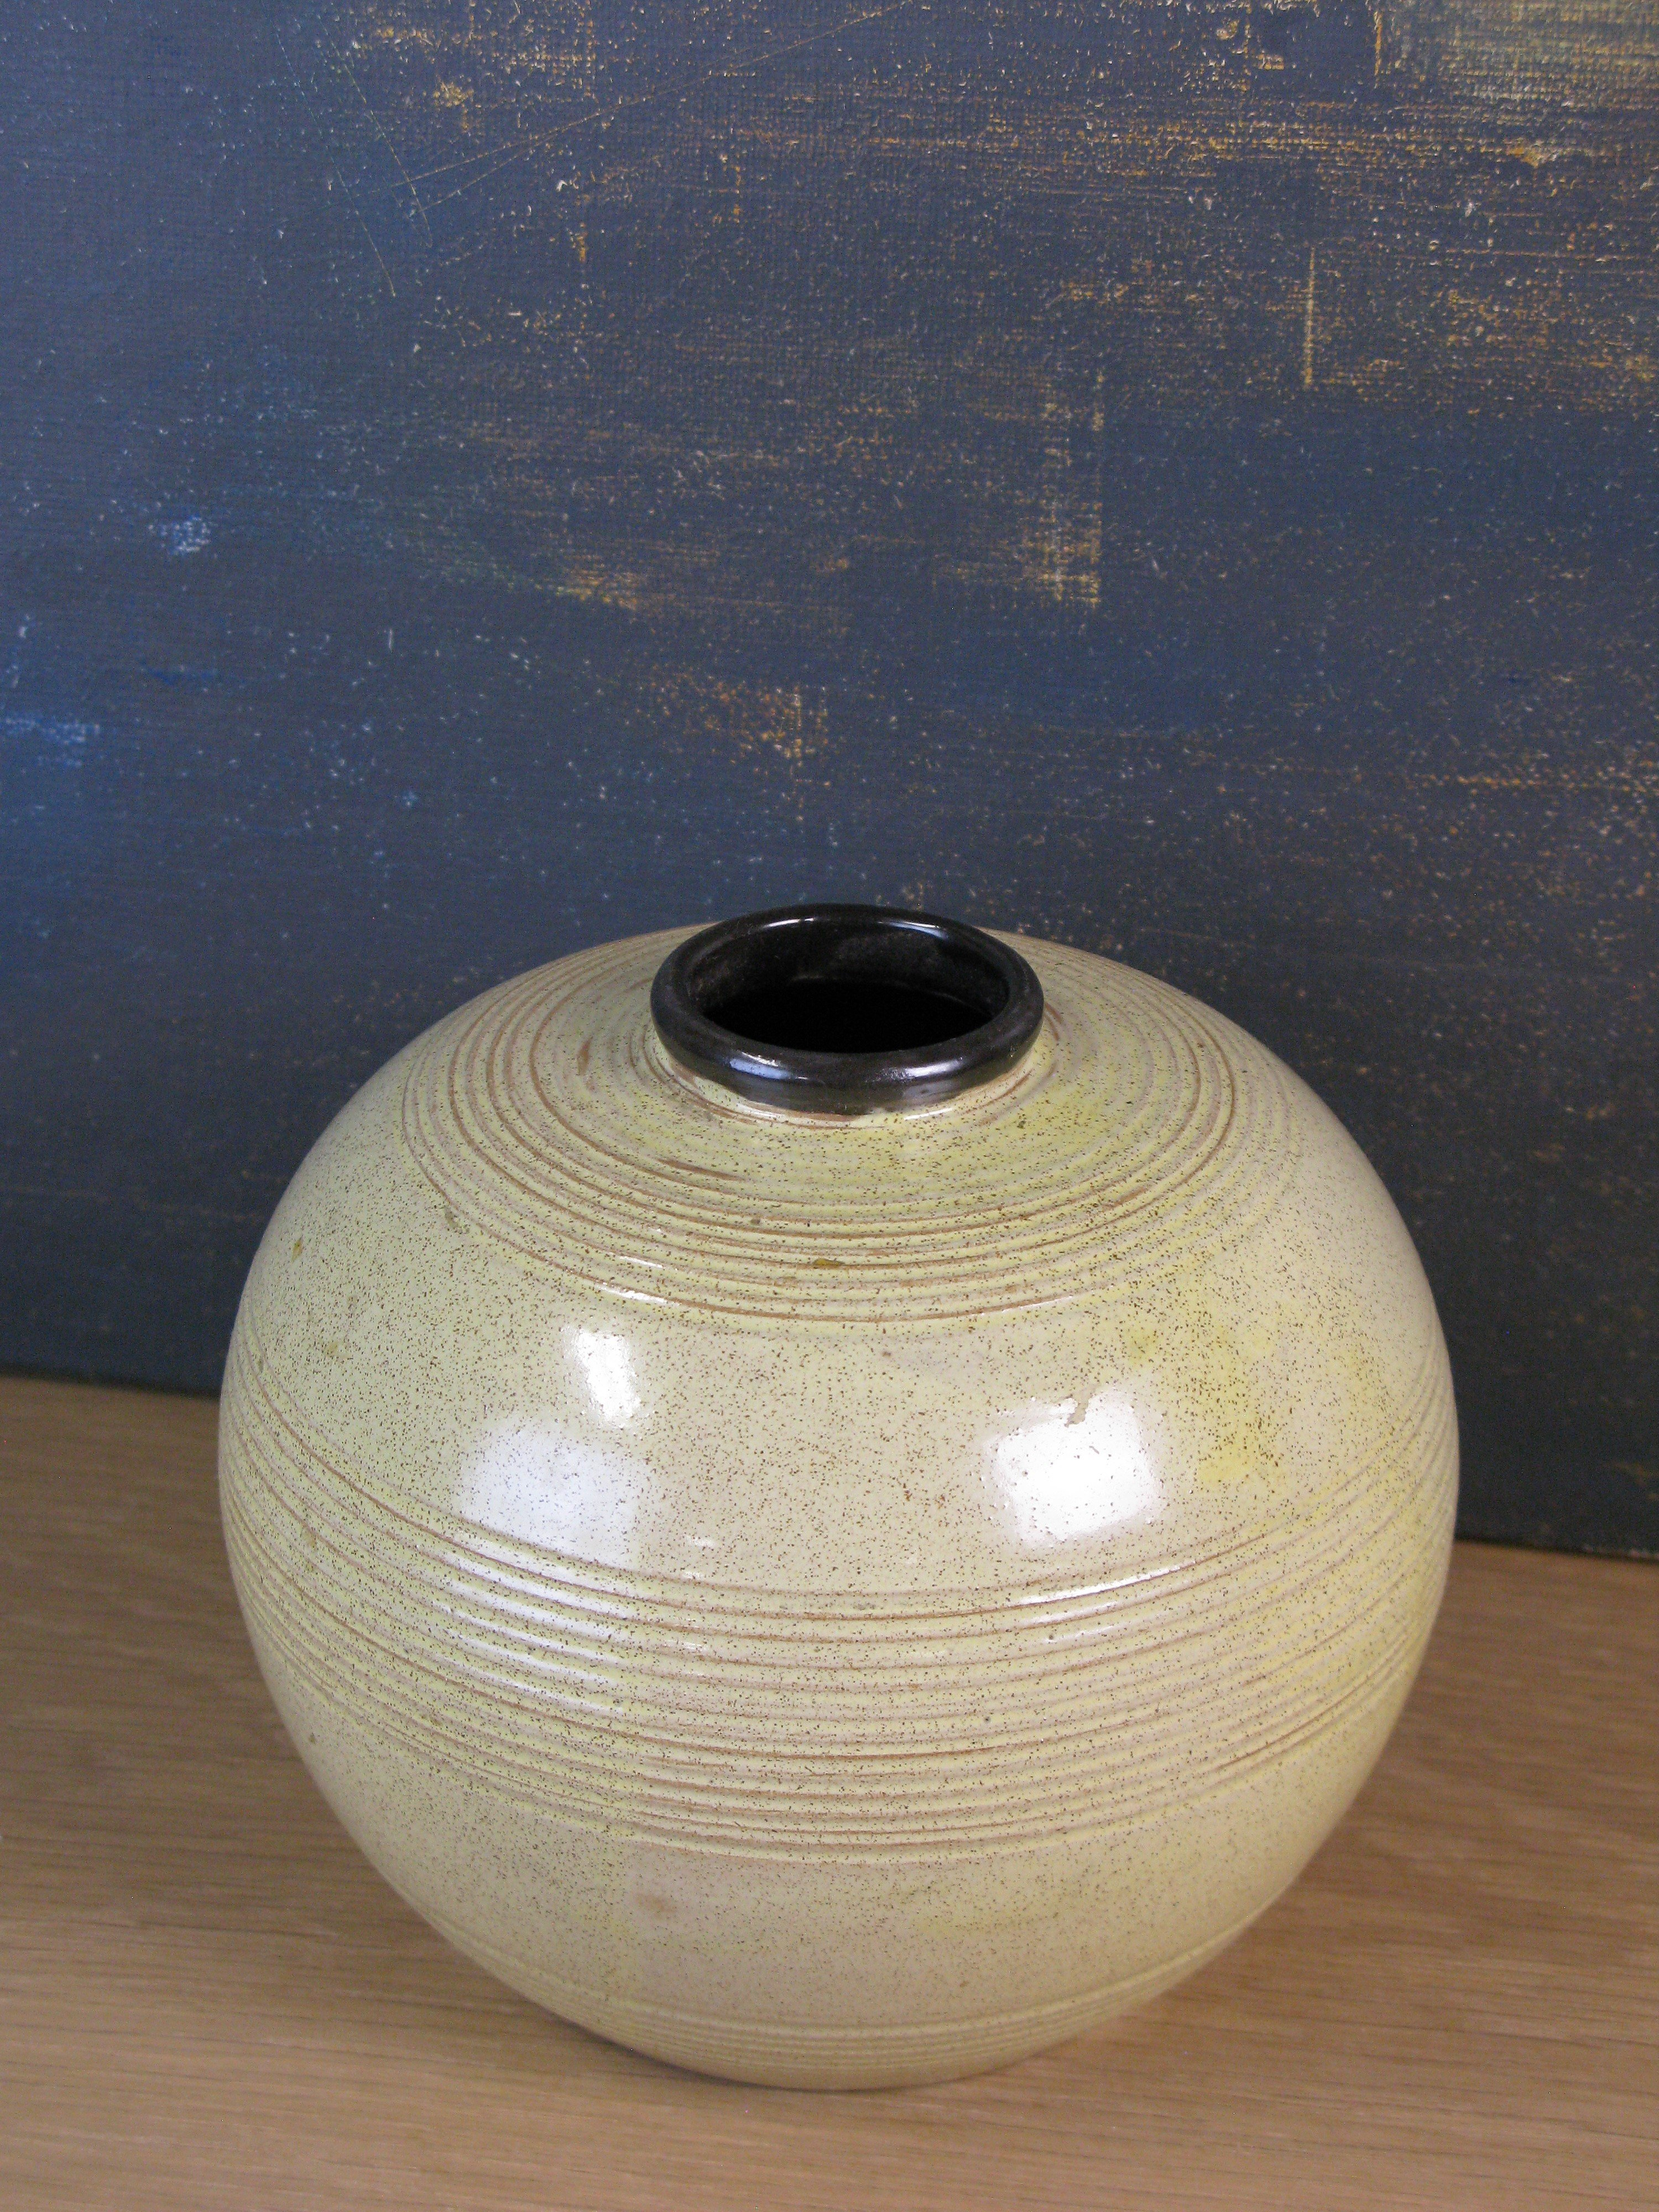 yellowish/brown vase 3156